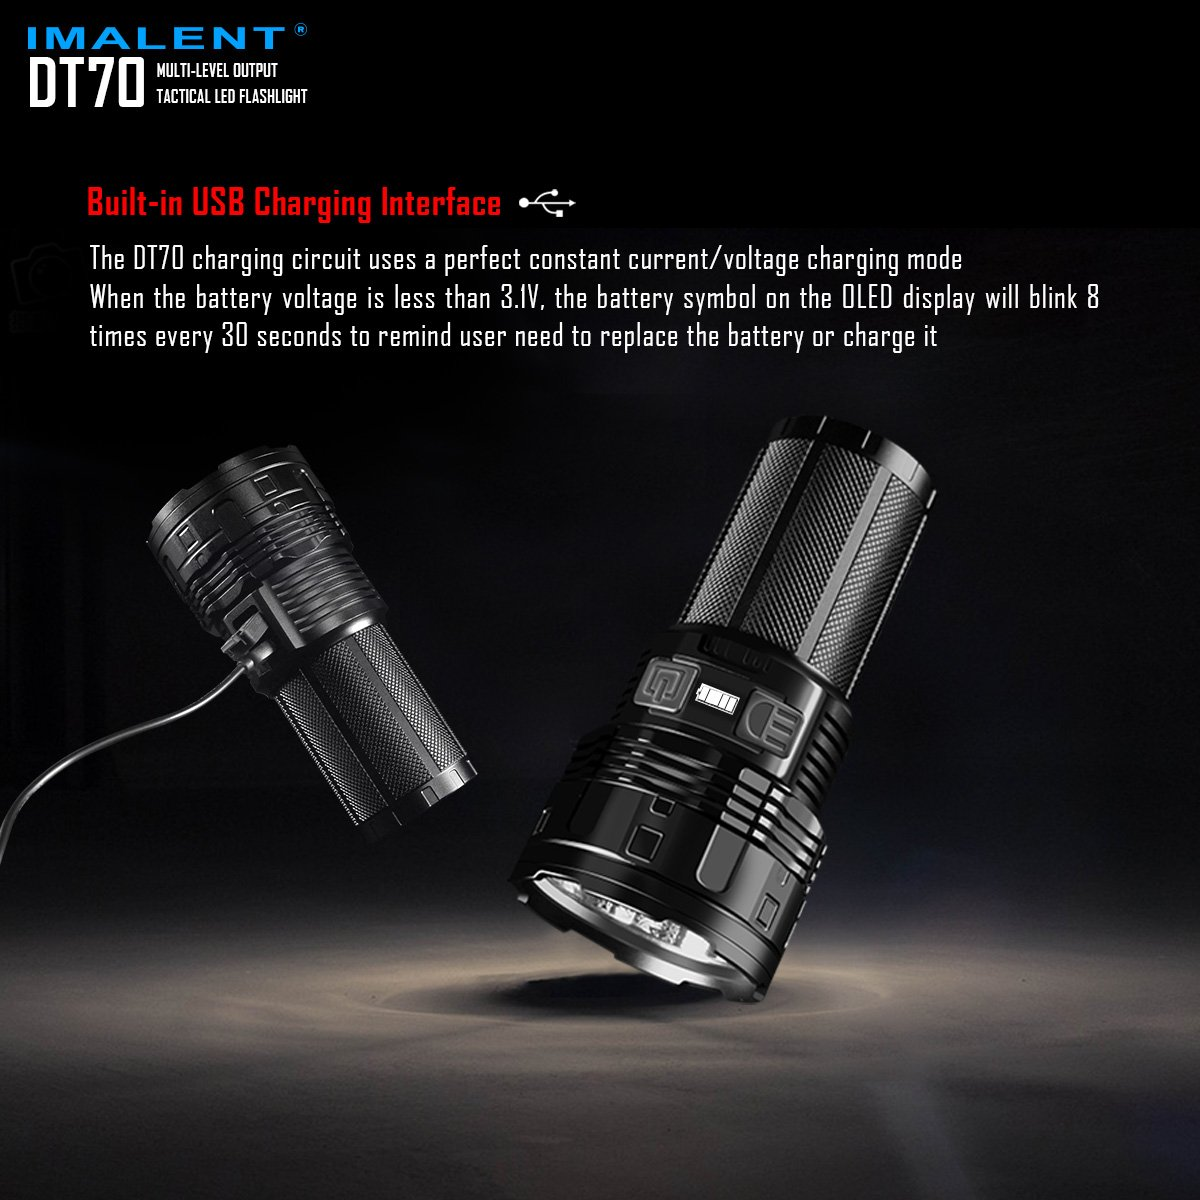 IMALENT DT70 Flashlights High Lumens Rechargeable 16000 Lumens 4 Pcs CREE XHP70 LEDs, Portable Handheld Torch by IMALENT (Image #4)